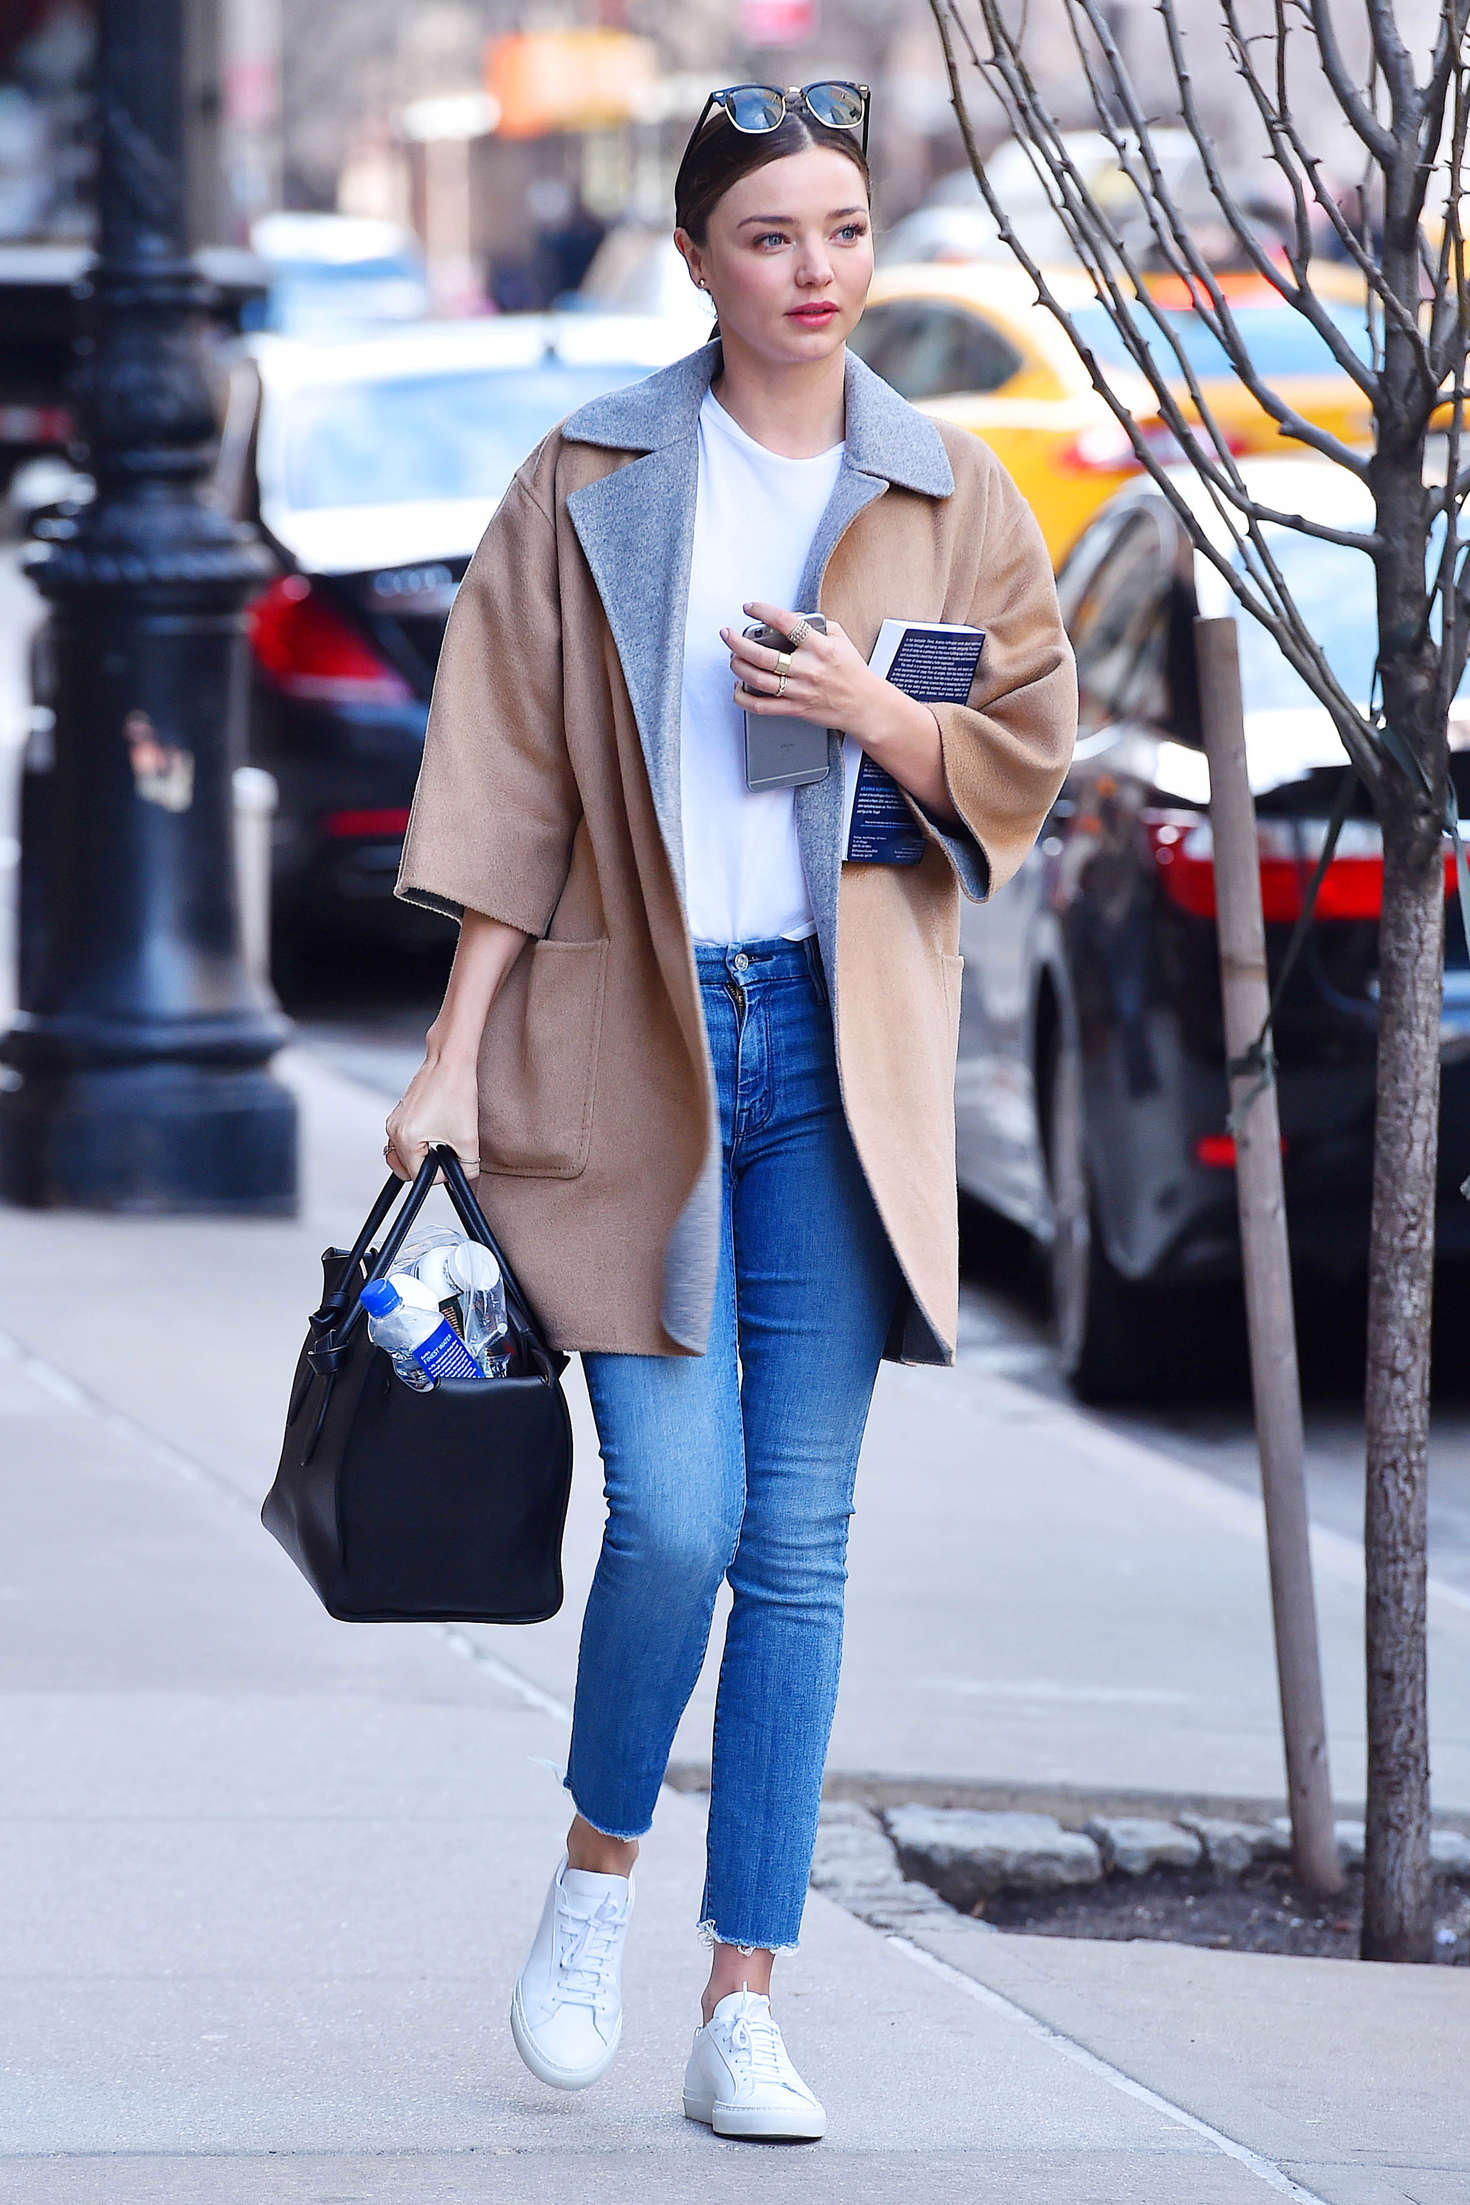 winter outfits 2018 celebrity fashion street style